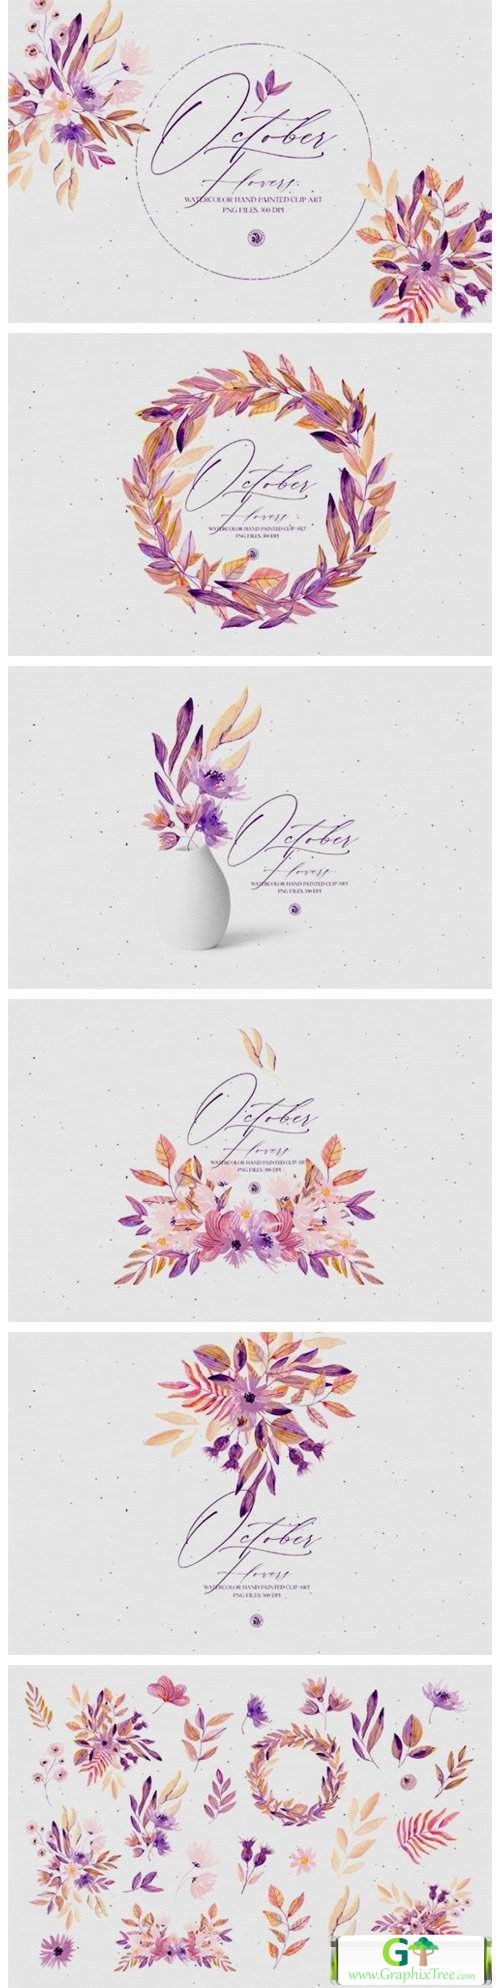 Watercolor Set - October Flowers [Stock Image] [illustrations]